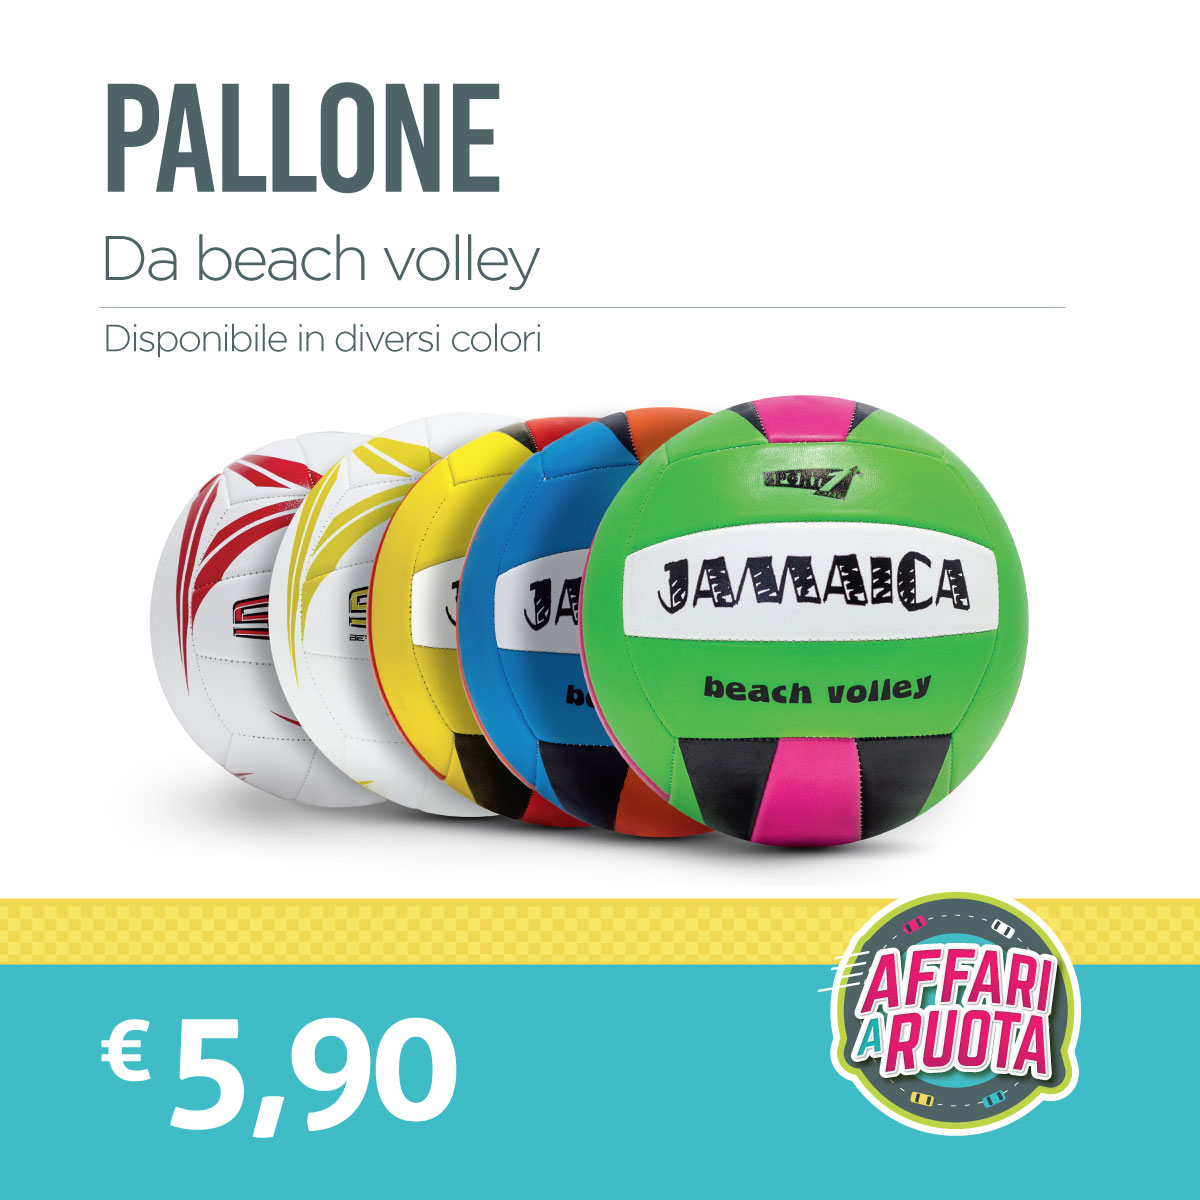 Pallone da beach volley